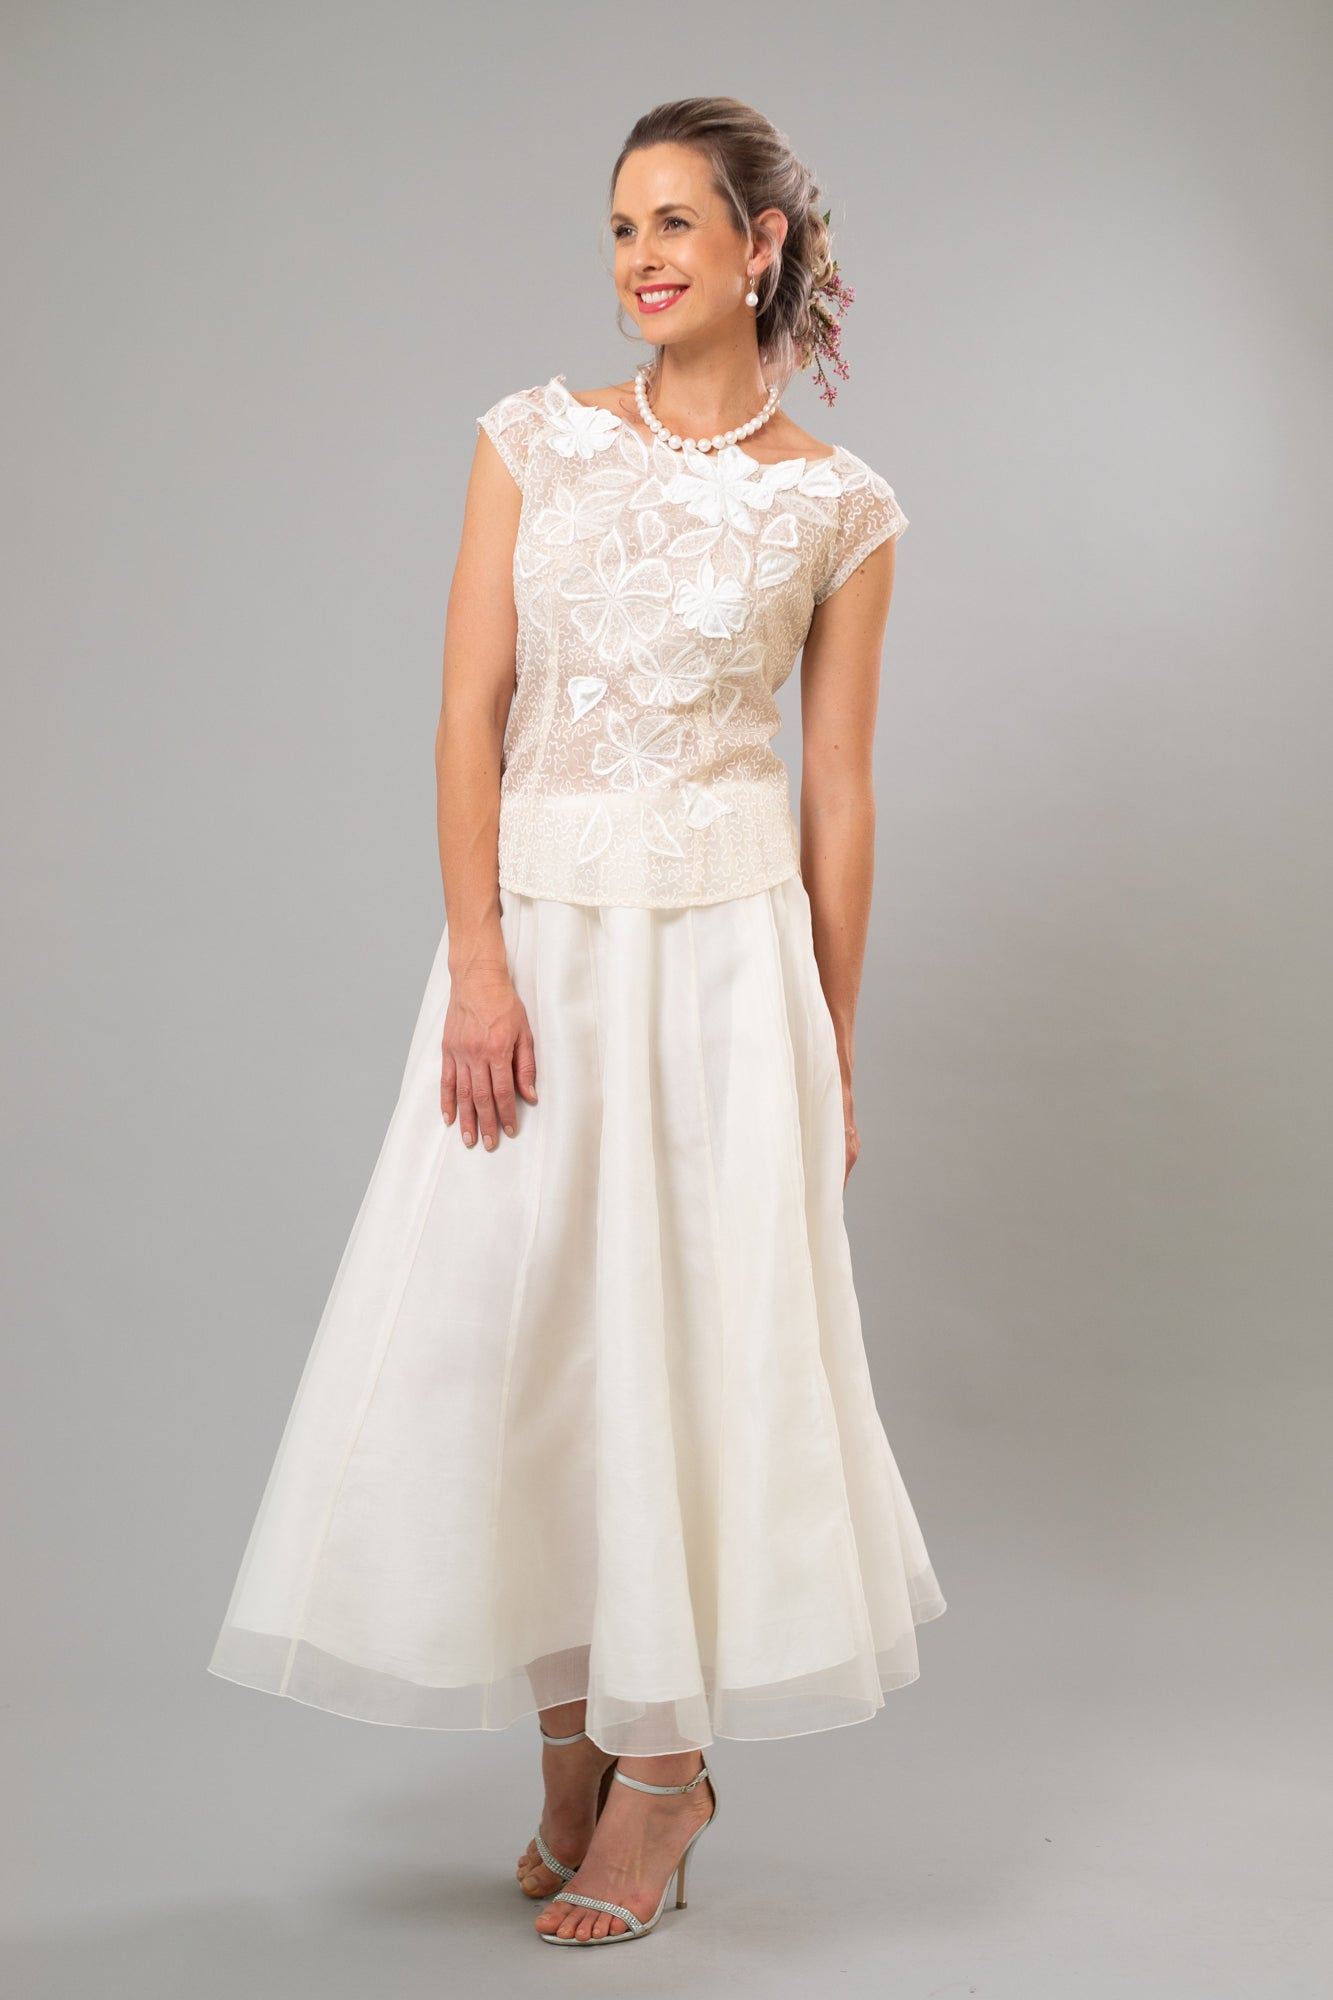 Gypsy Skirt - For the Understated Bride